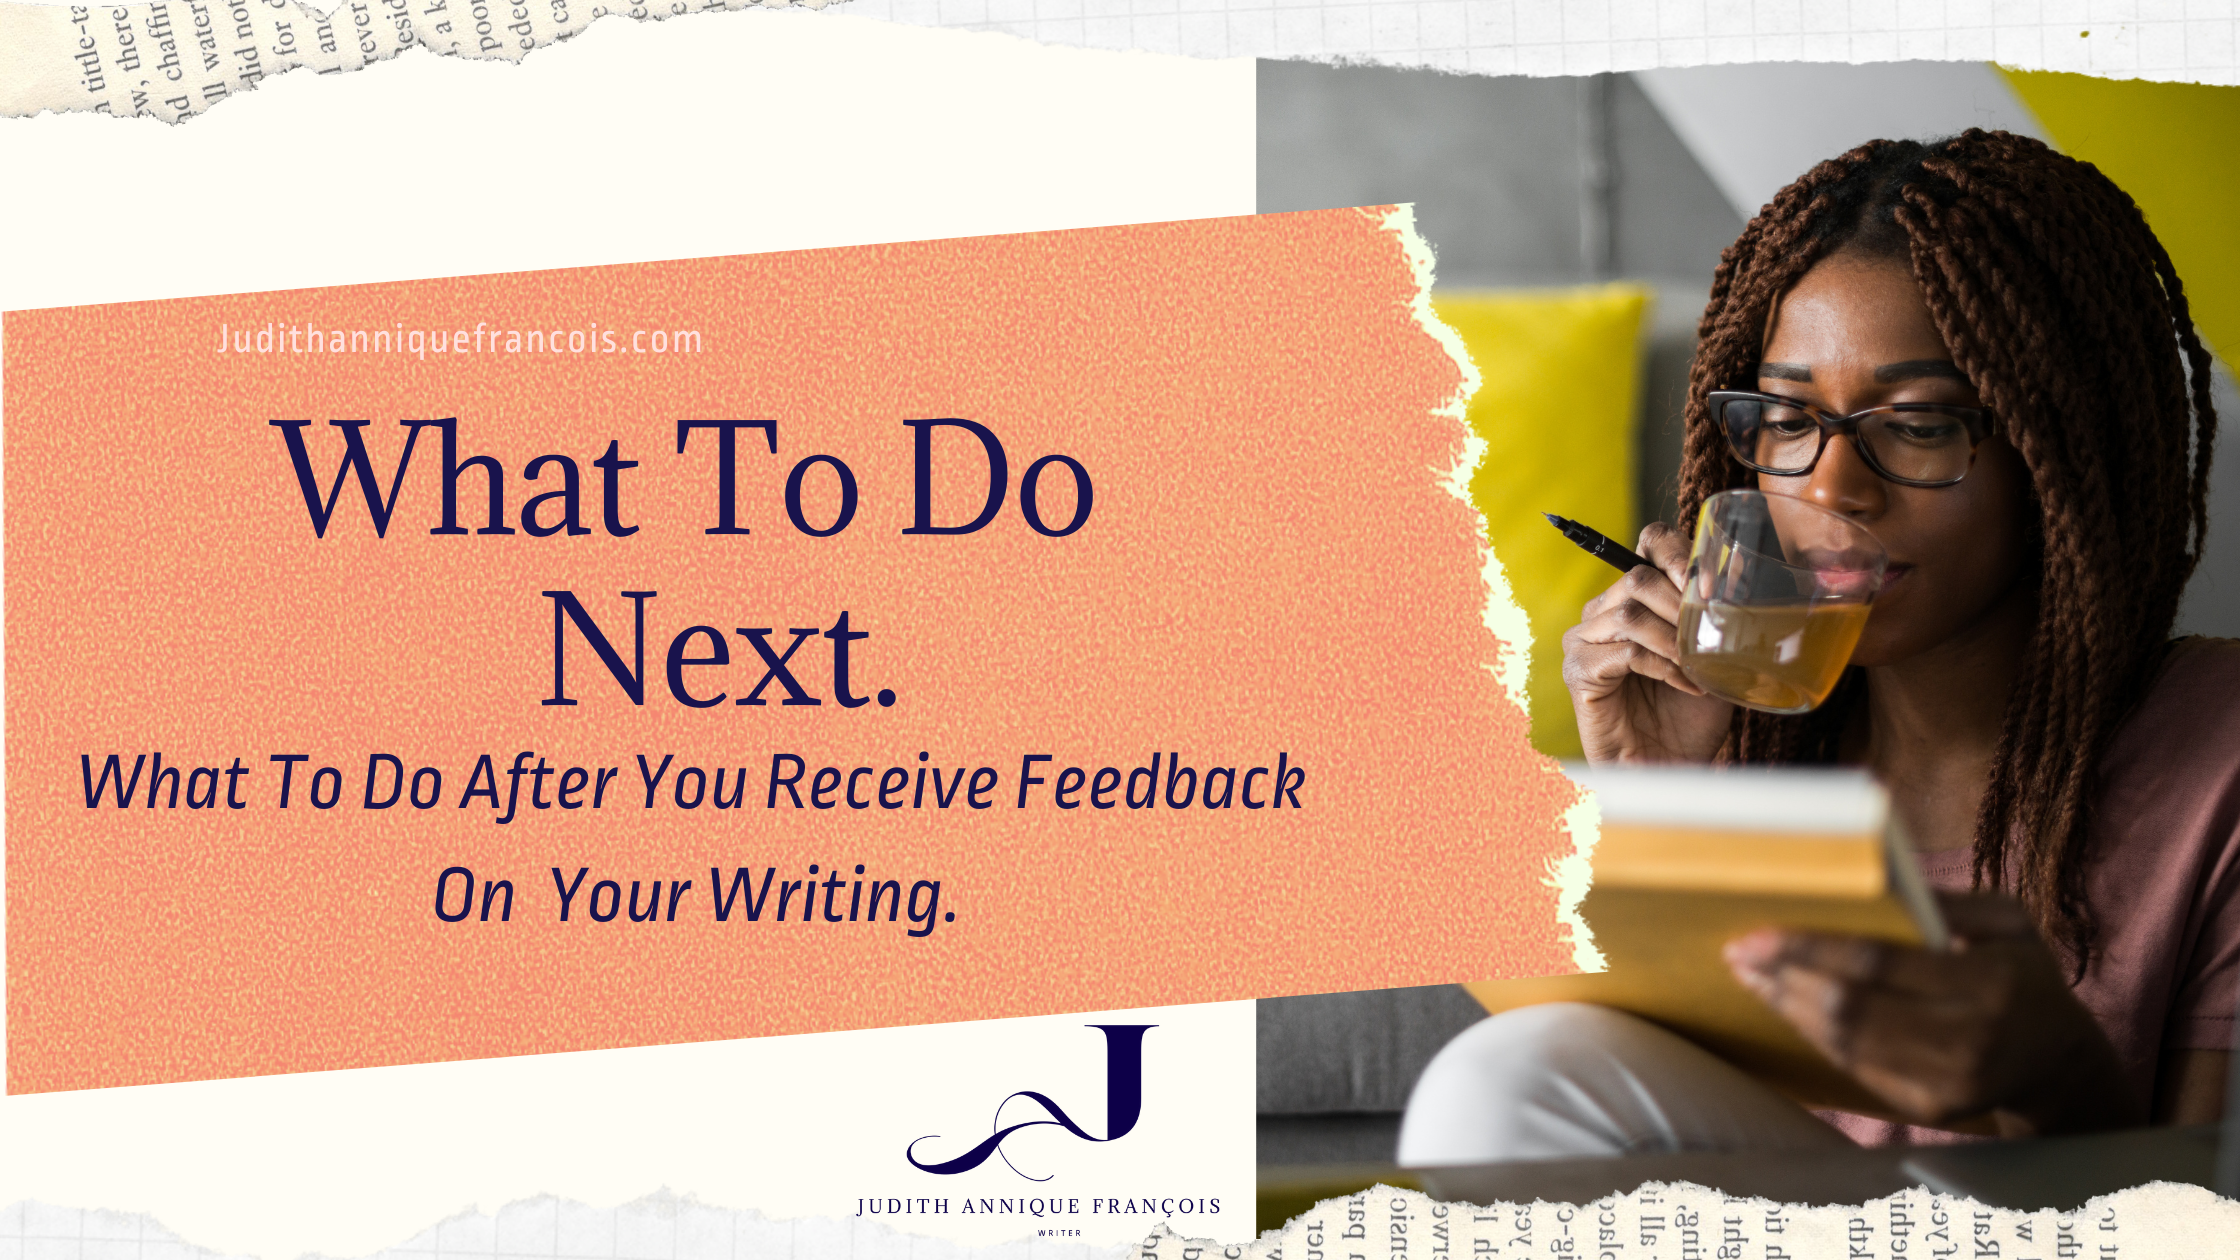 What To Do Next. What to do After You Receive Feedback on Your Writing - Judith Annique François